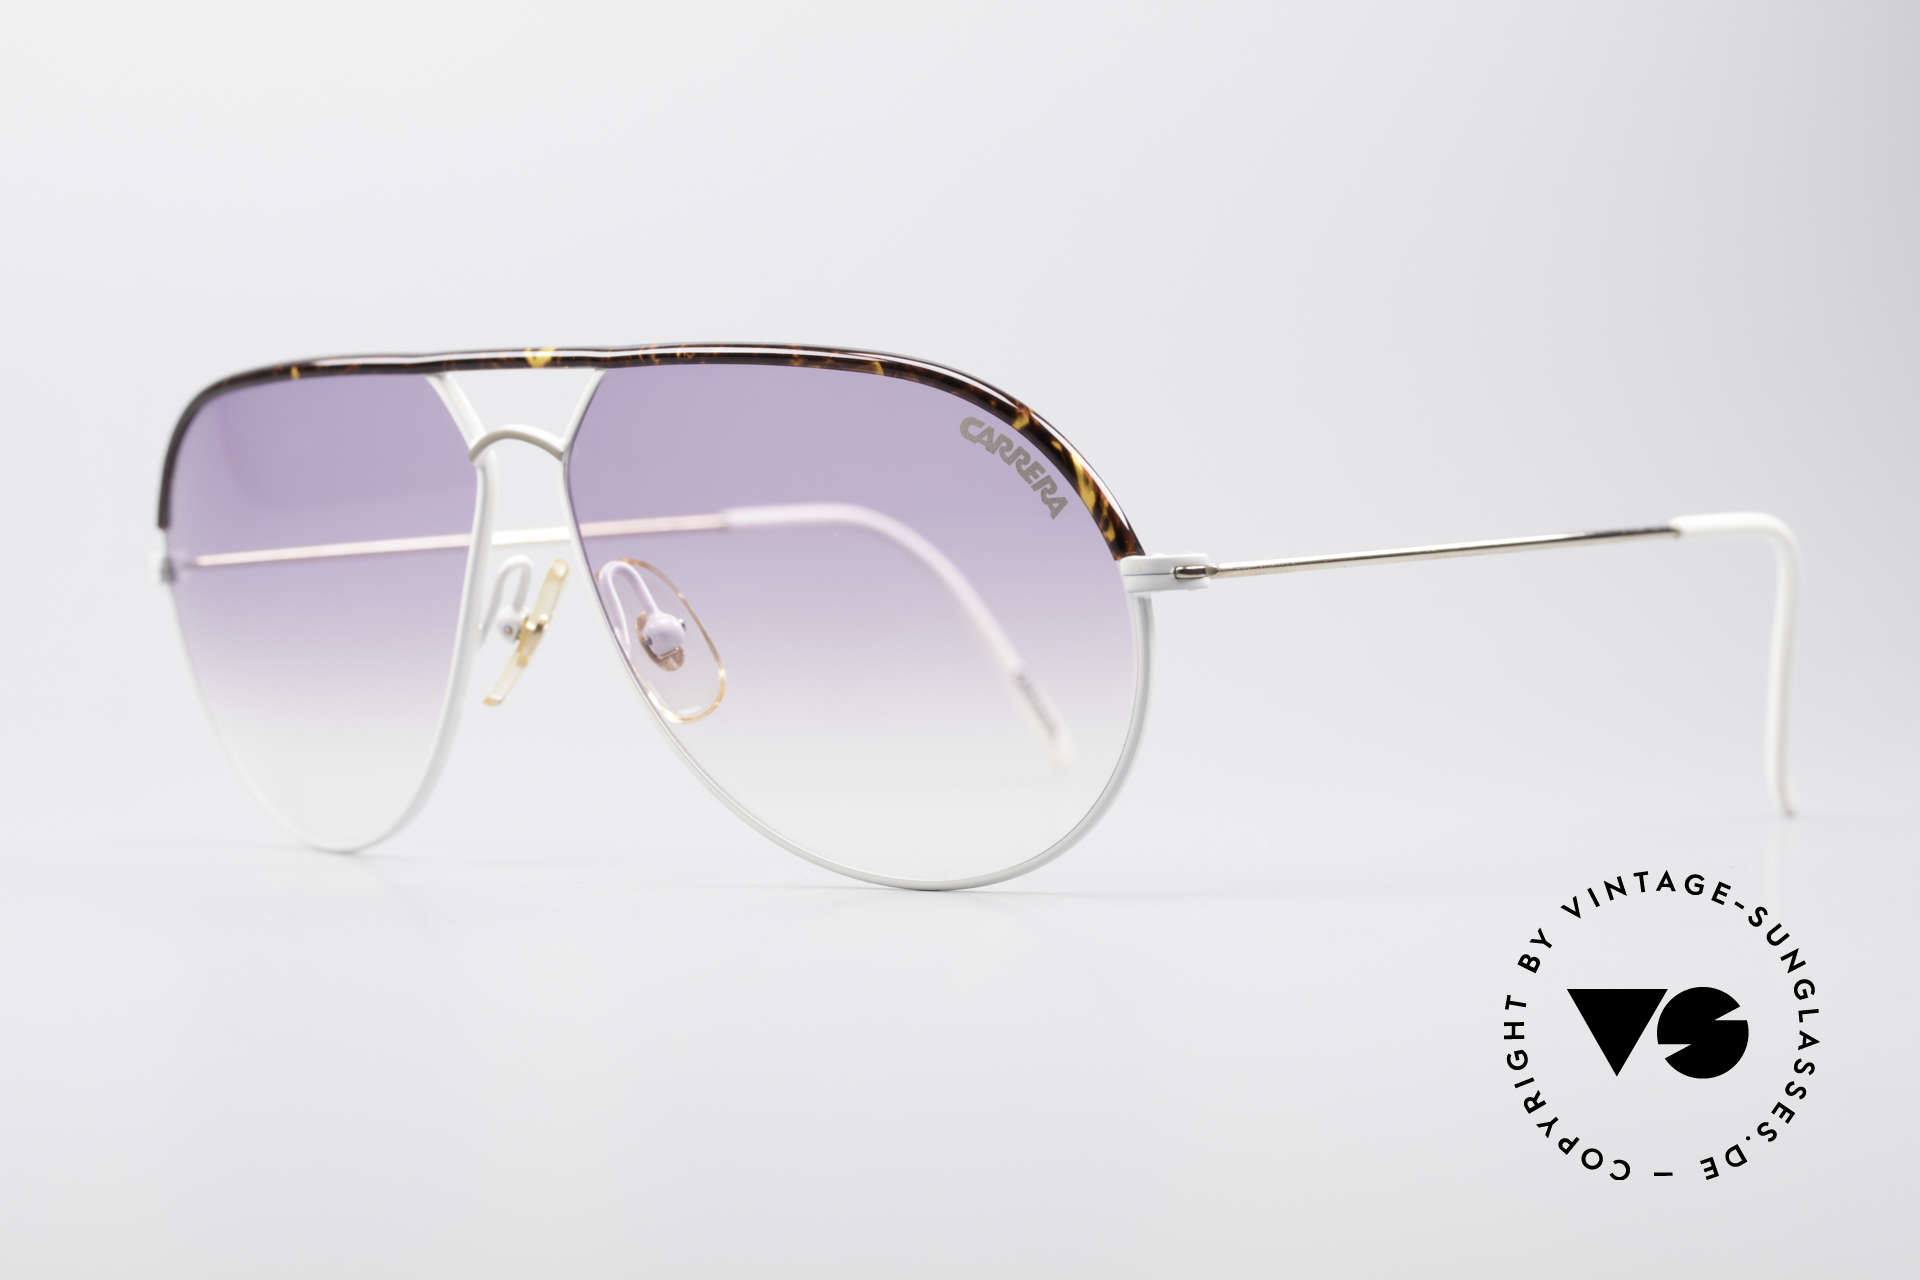 Carrera 5428 Rare Vintage 80's Shades, tangible 1st class craftsmanship; made in Austria, Made for Men and Women